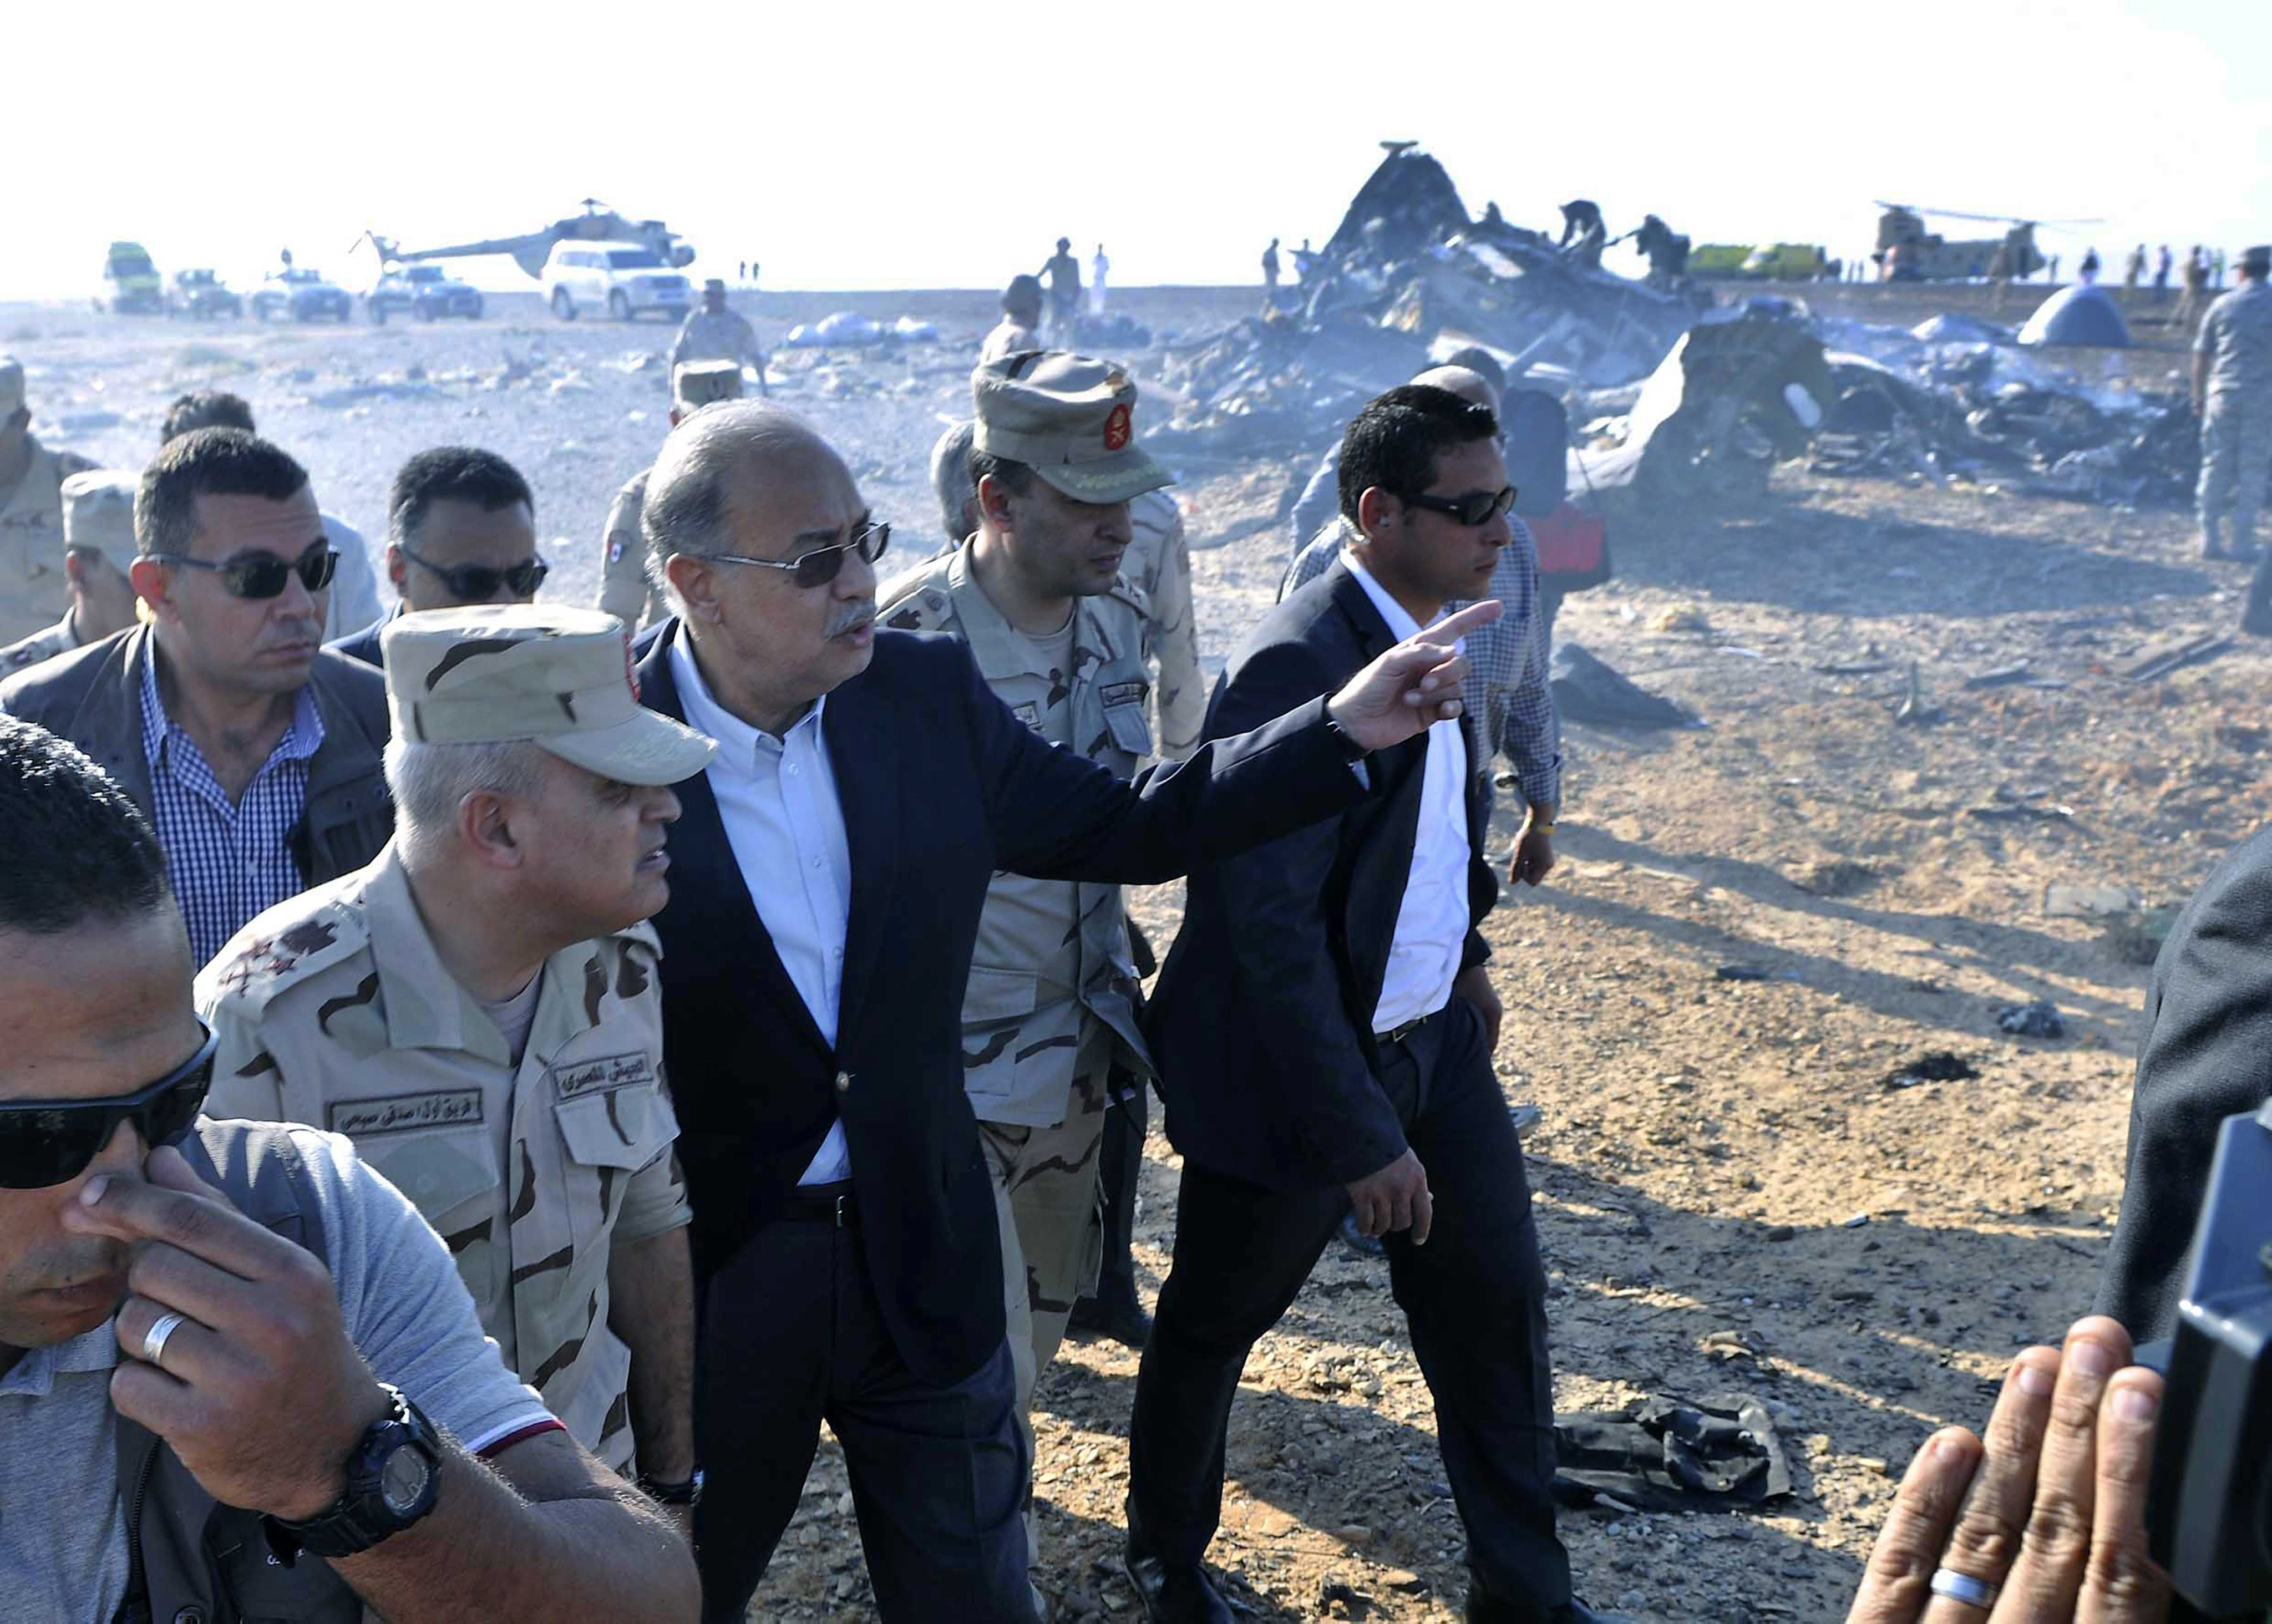 SIN11. Sinai (Egypt), .- The Egyptian Prime Minister, Sherif Ismail (3 - L), examines the wreckage at the site of the Russian plane crash, Sinai, Egypt, 31 October 2015. According to reports the Egyptian Government has dispatched more than 45 ambulances to the crash site of the Kogalymavia Metrojet Russian passenger jet, which disappeared from raider after requesting an emergency landing early 31 October, crashing in the mountainous al-Hasanah area of central Sinai. The black box has been recovered at the site. (Egipto) EFE/EPA/STR EGYPT OUT Authorities fear all on board crashed Russian jet dead